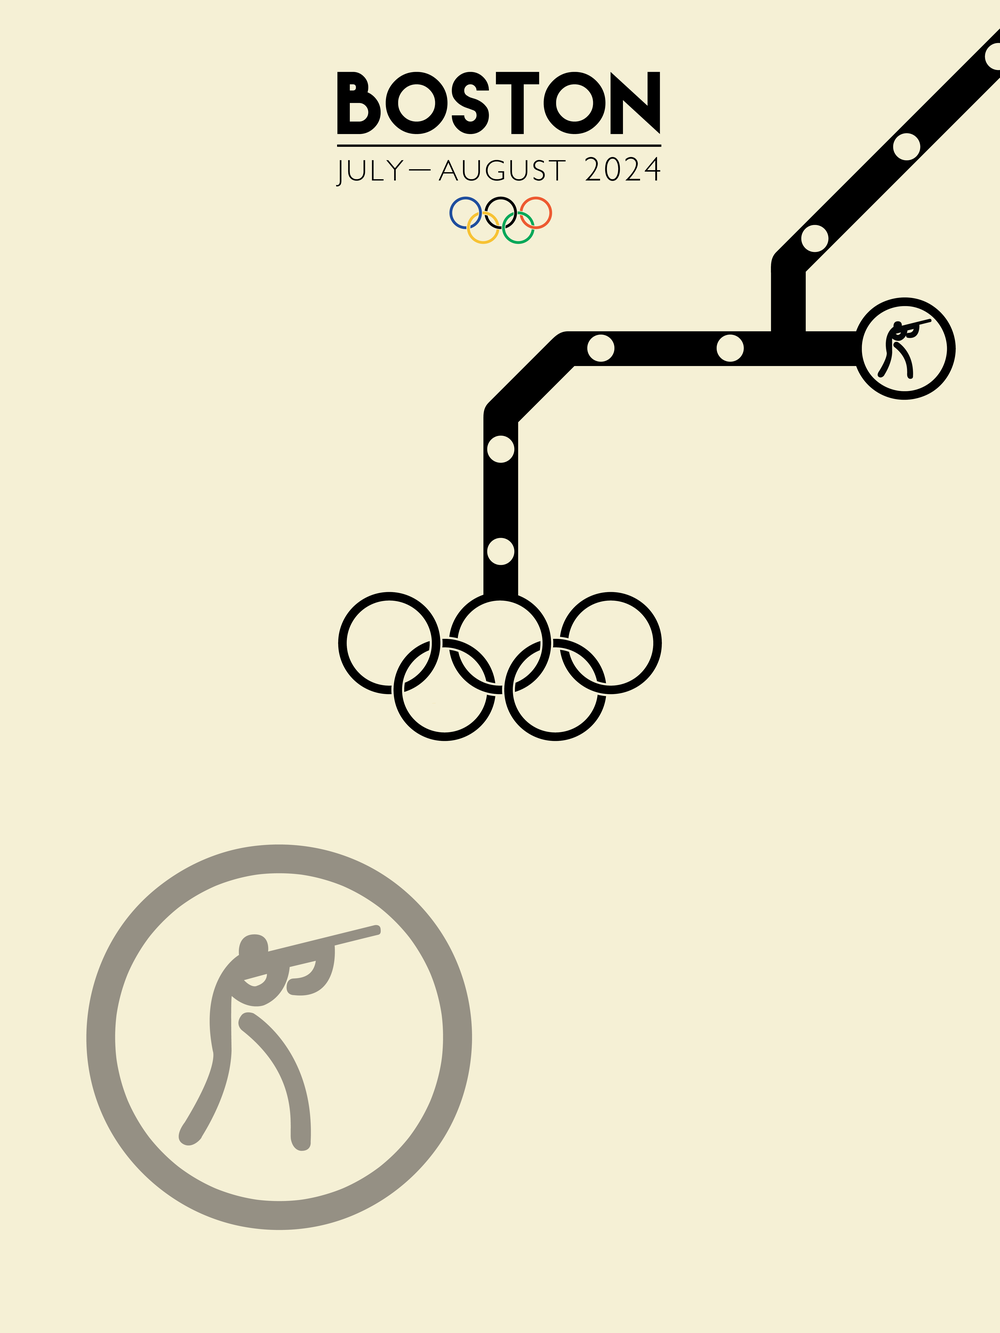 FinalOLYMPICposterALL-02.png